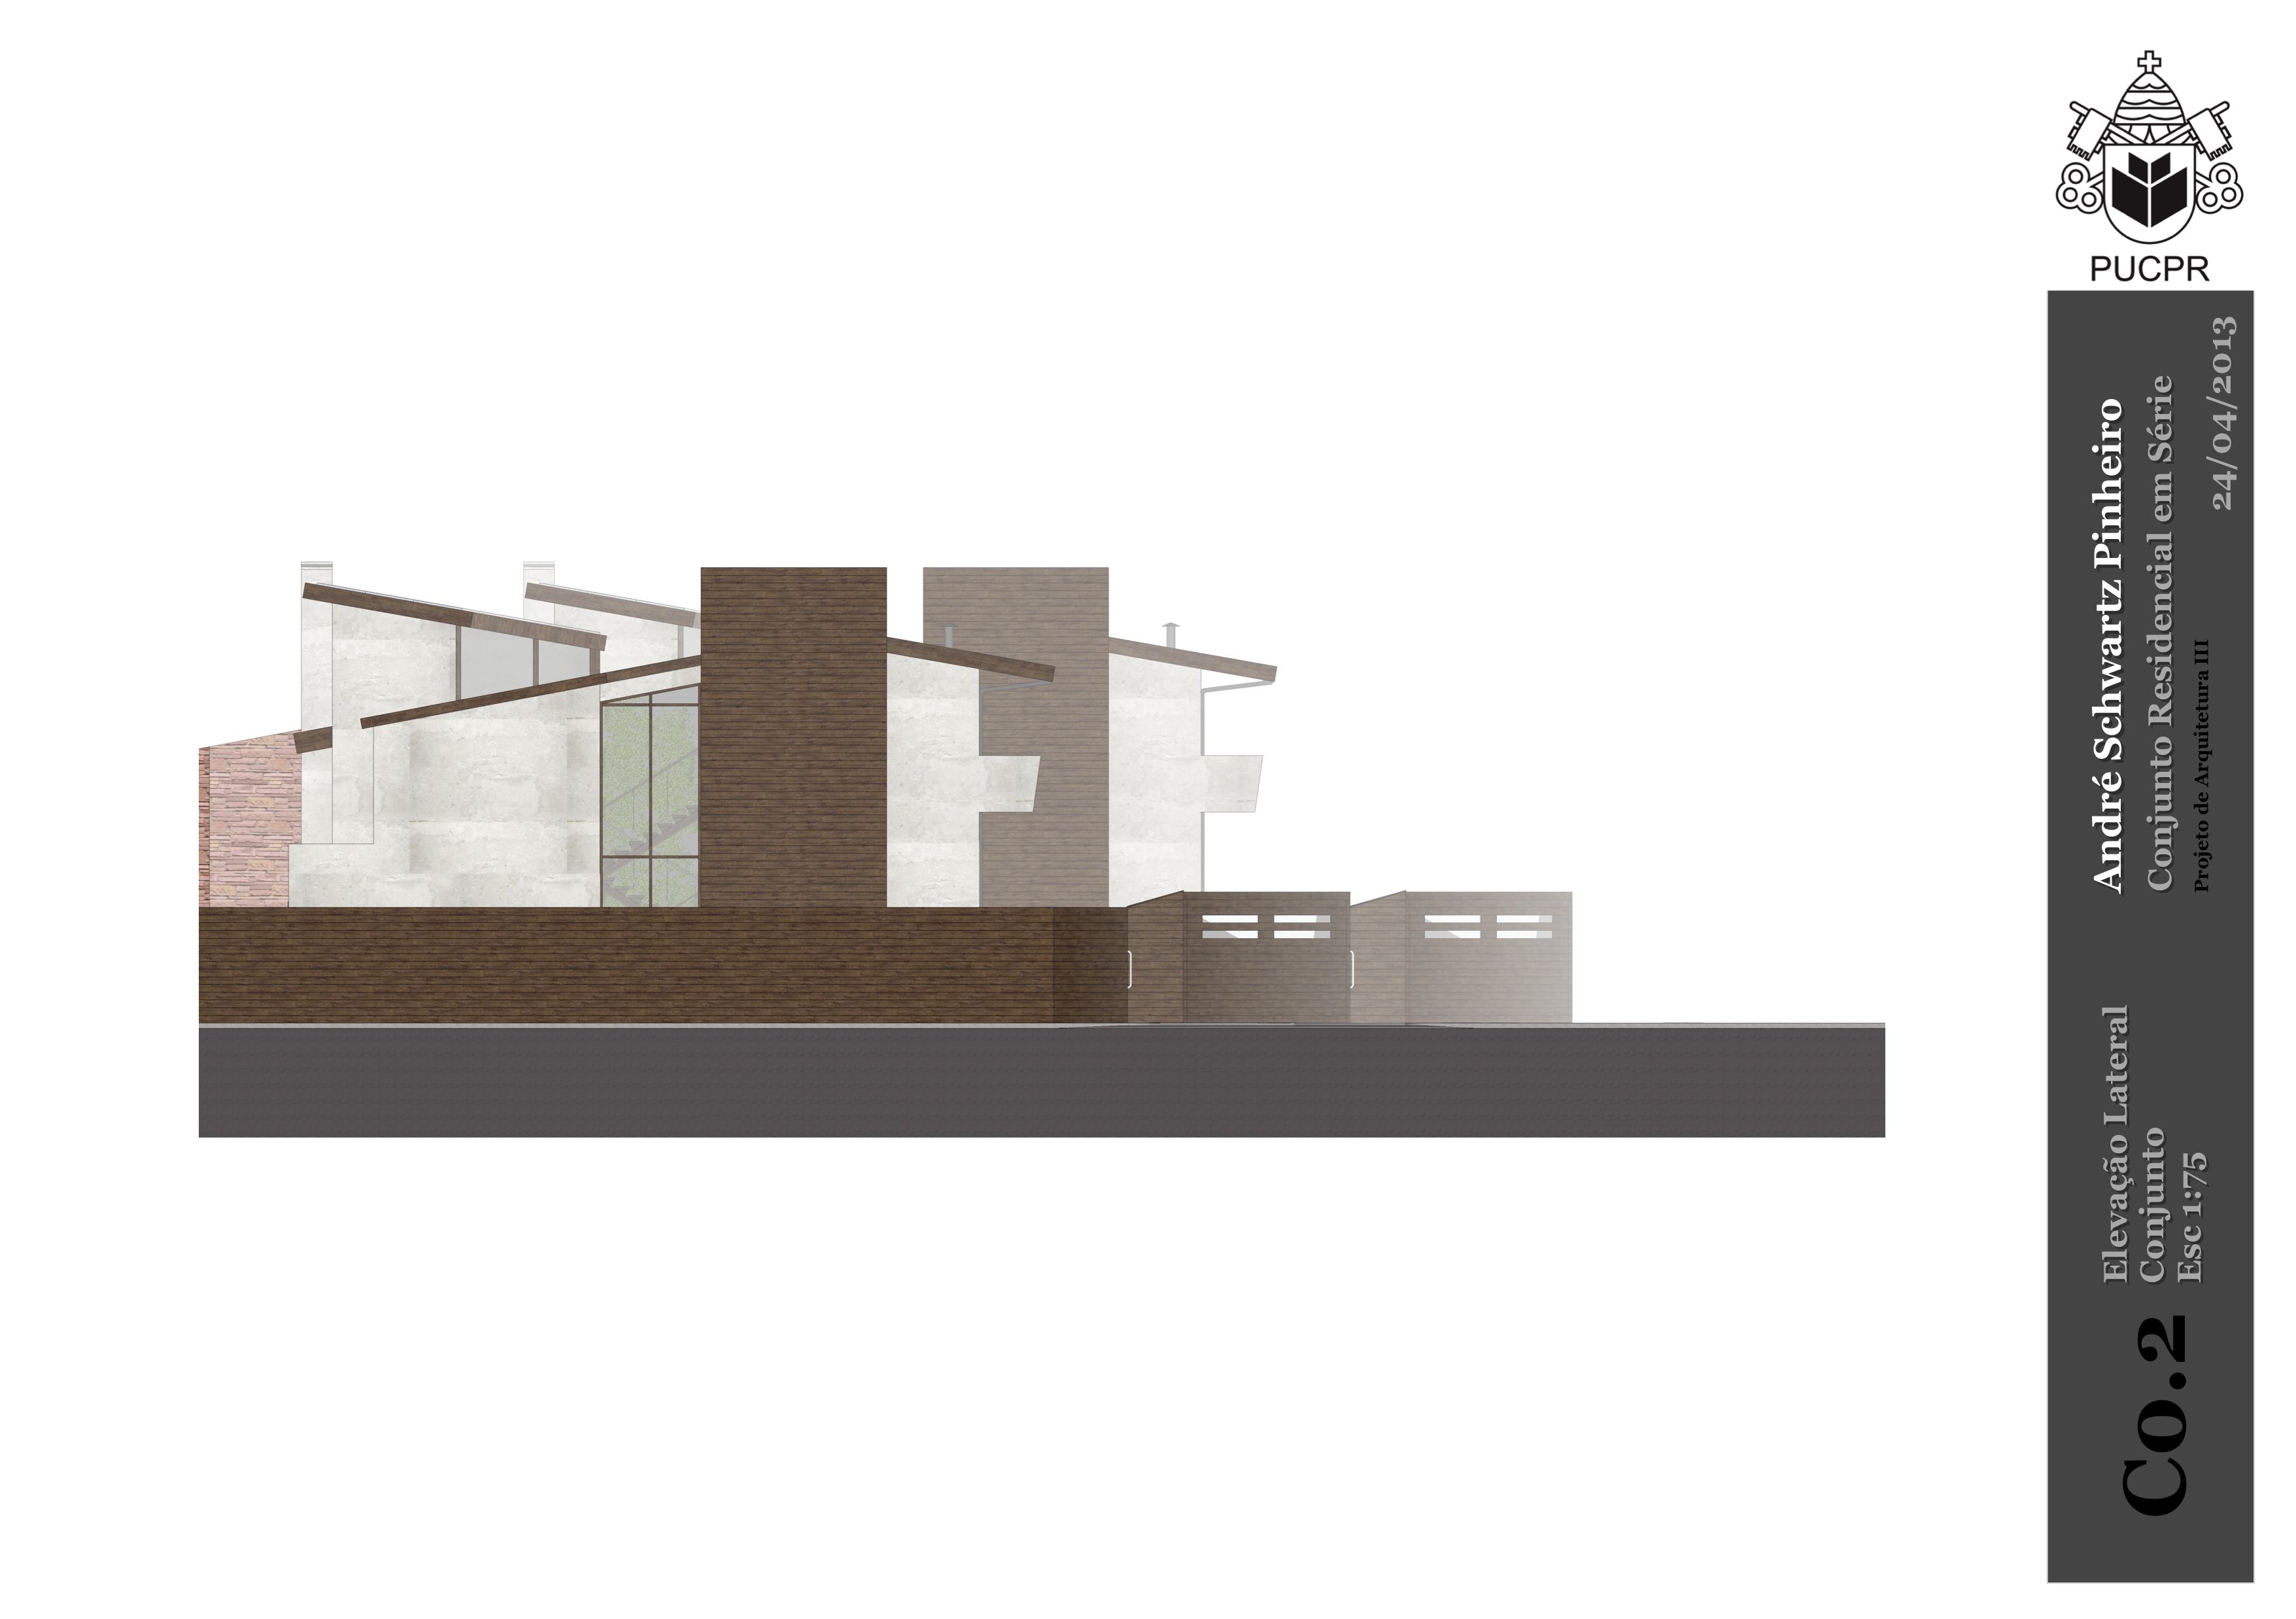 left side elevation group by andrespinheiro on left side elevation group by andrespinheiro